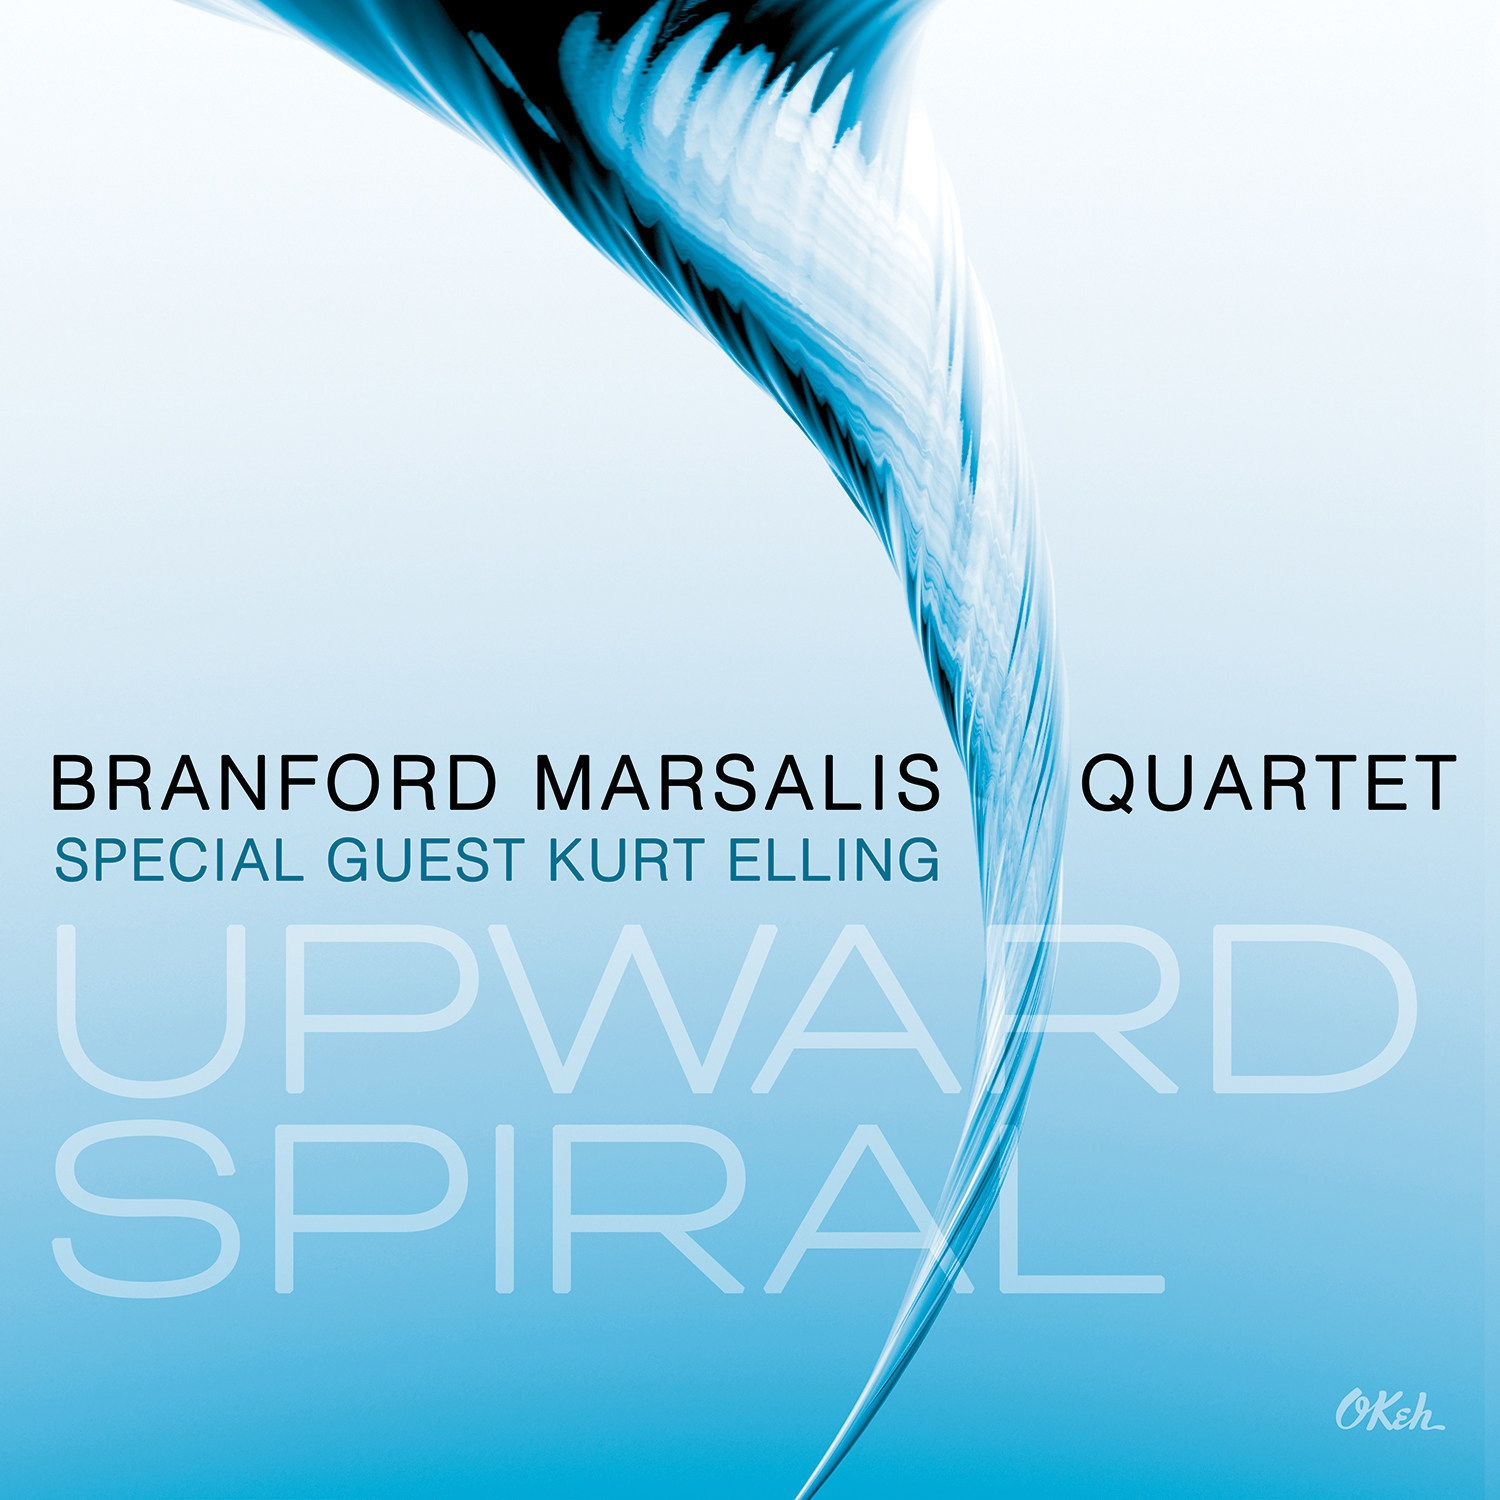 UPWARD SPIRAL: BRANFORD MARSALIS/KURT ELLING